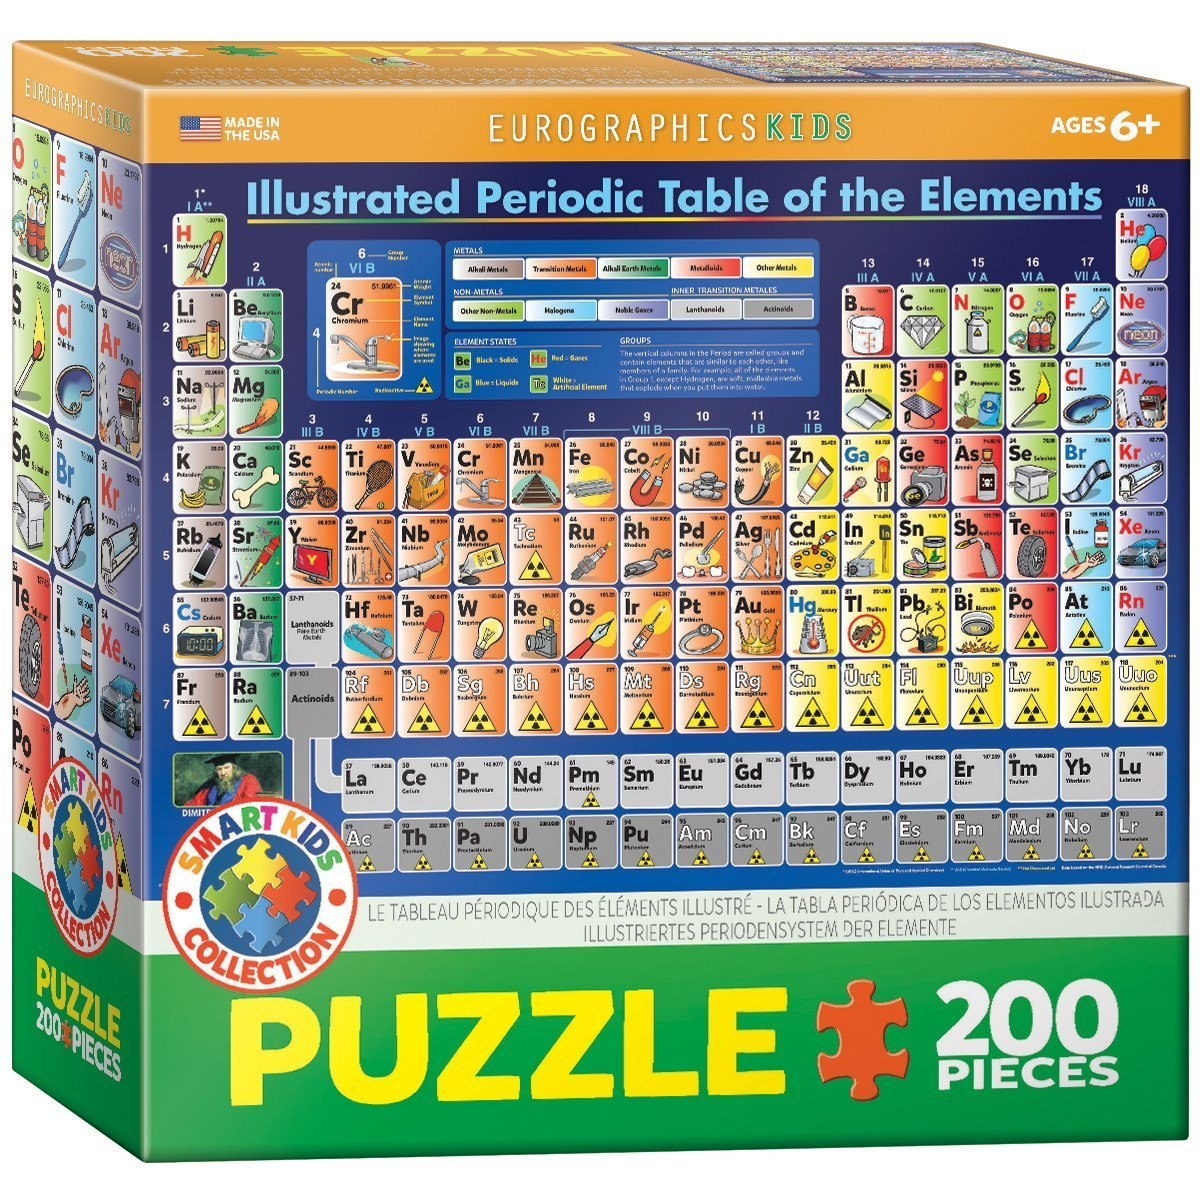 Illustrated Periodic Table of the Elements - 200pc Jigsaw Puzzle by EuroGraphics  			  					NEW